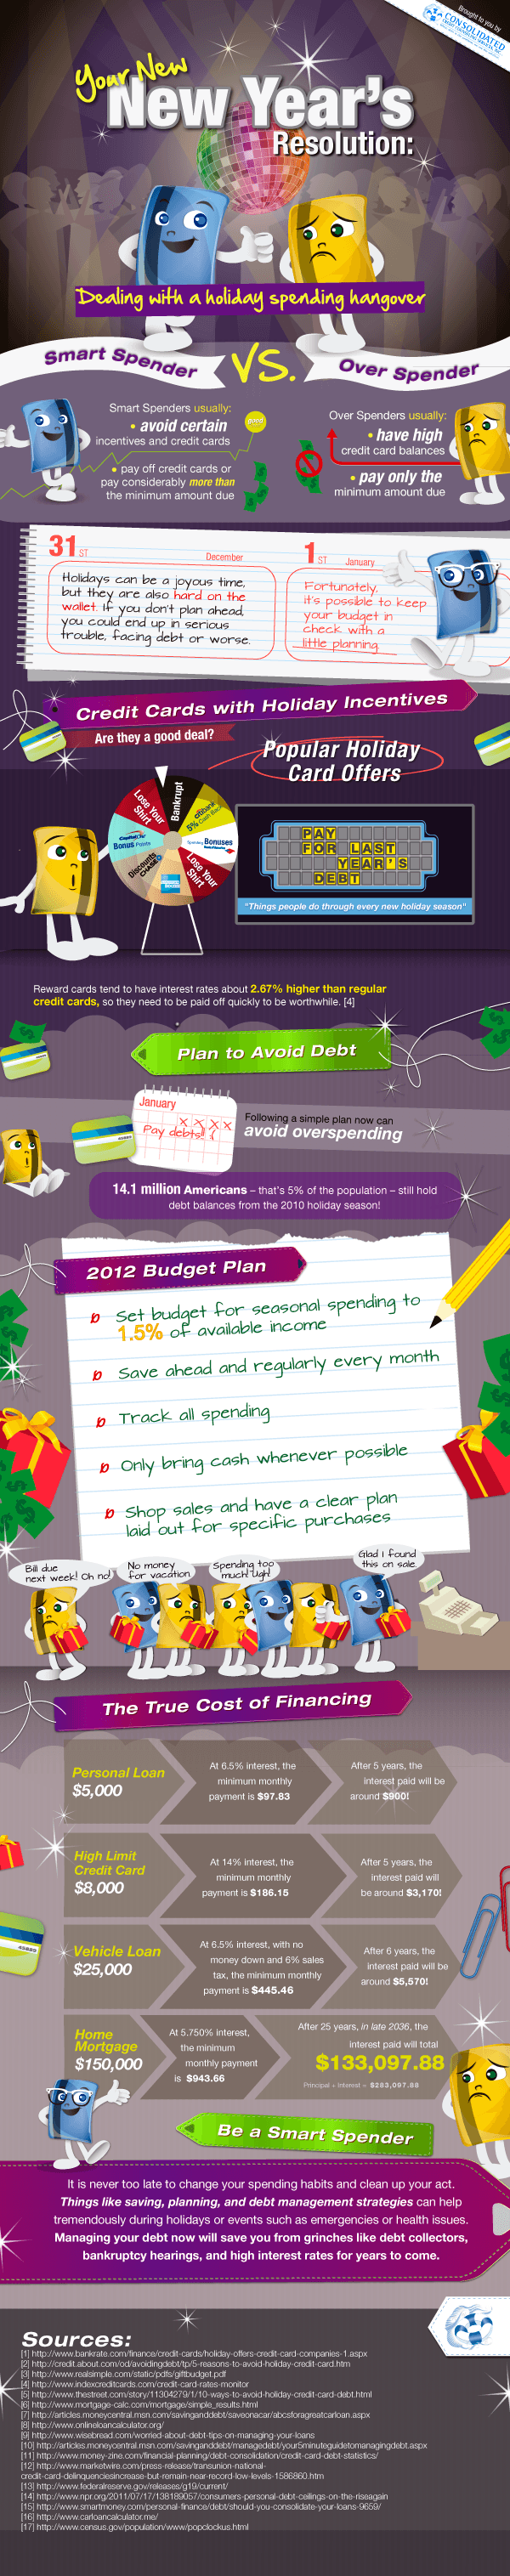 Be a smart spender, don't give yourself a spending hangover this New Year.